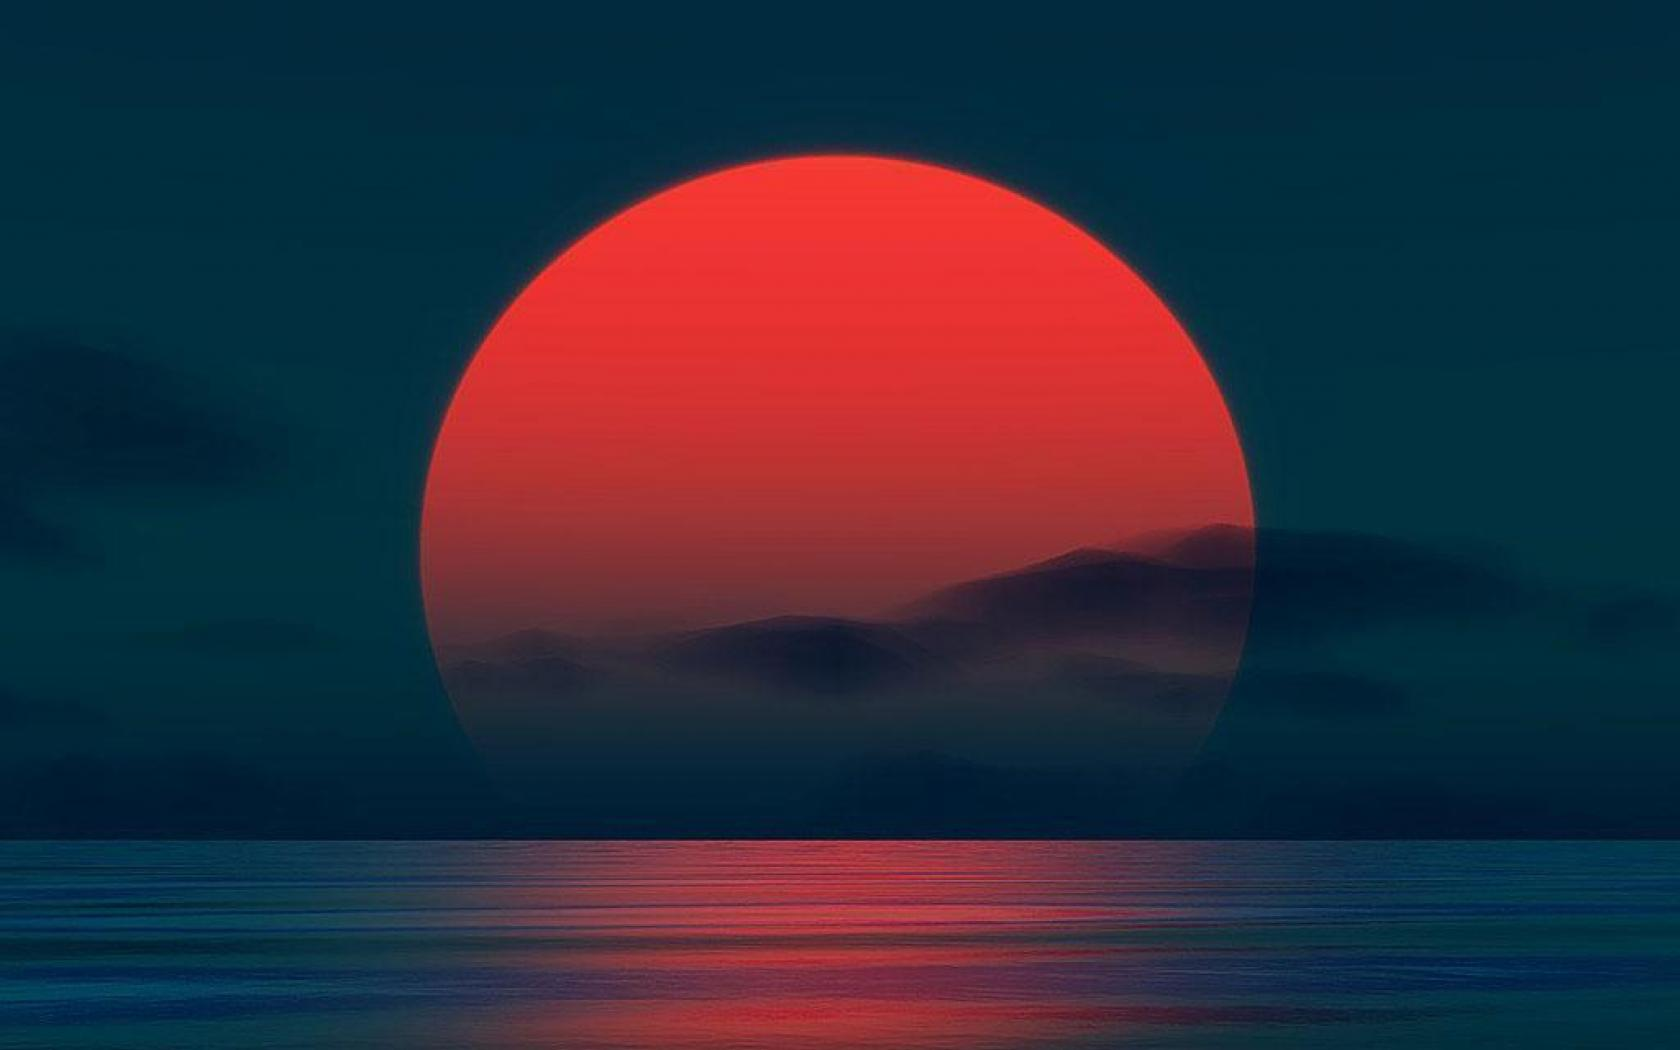 wallpaper: sunrise, rising sun, red, dark, dawn, shimmering lake ...